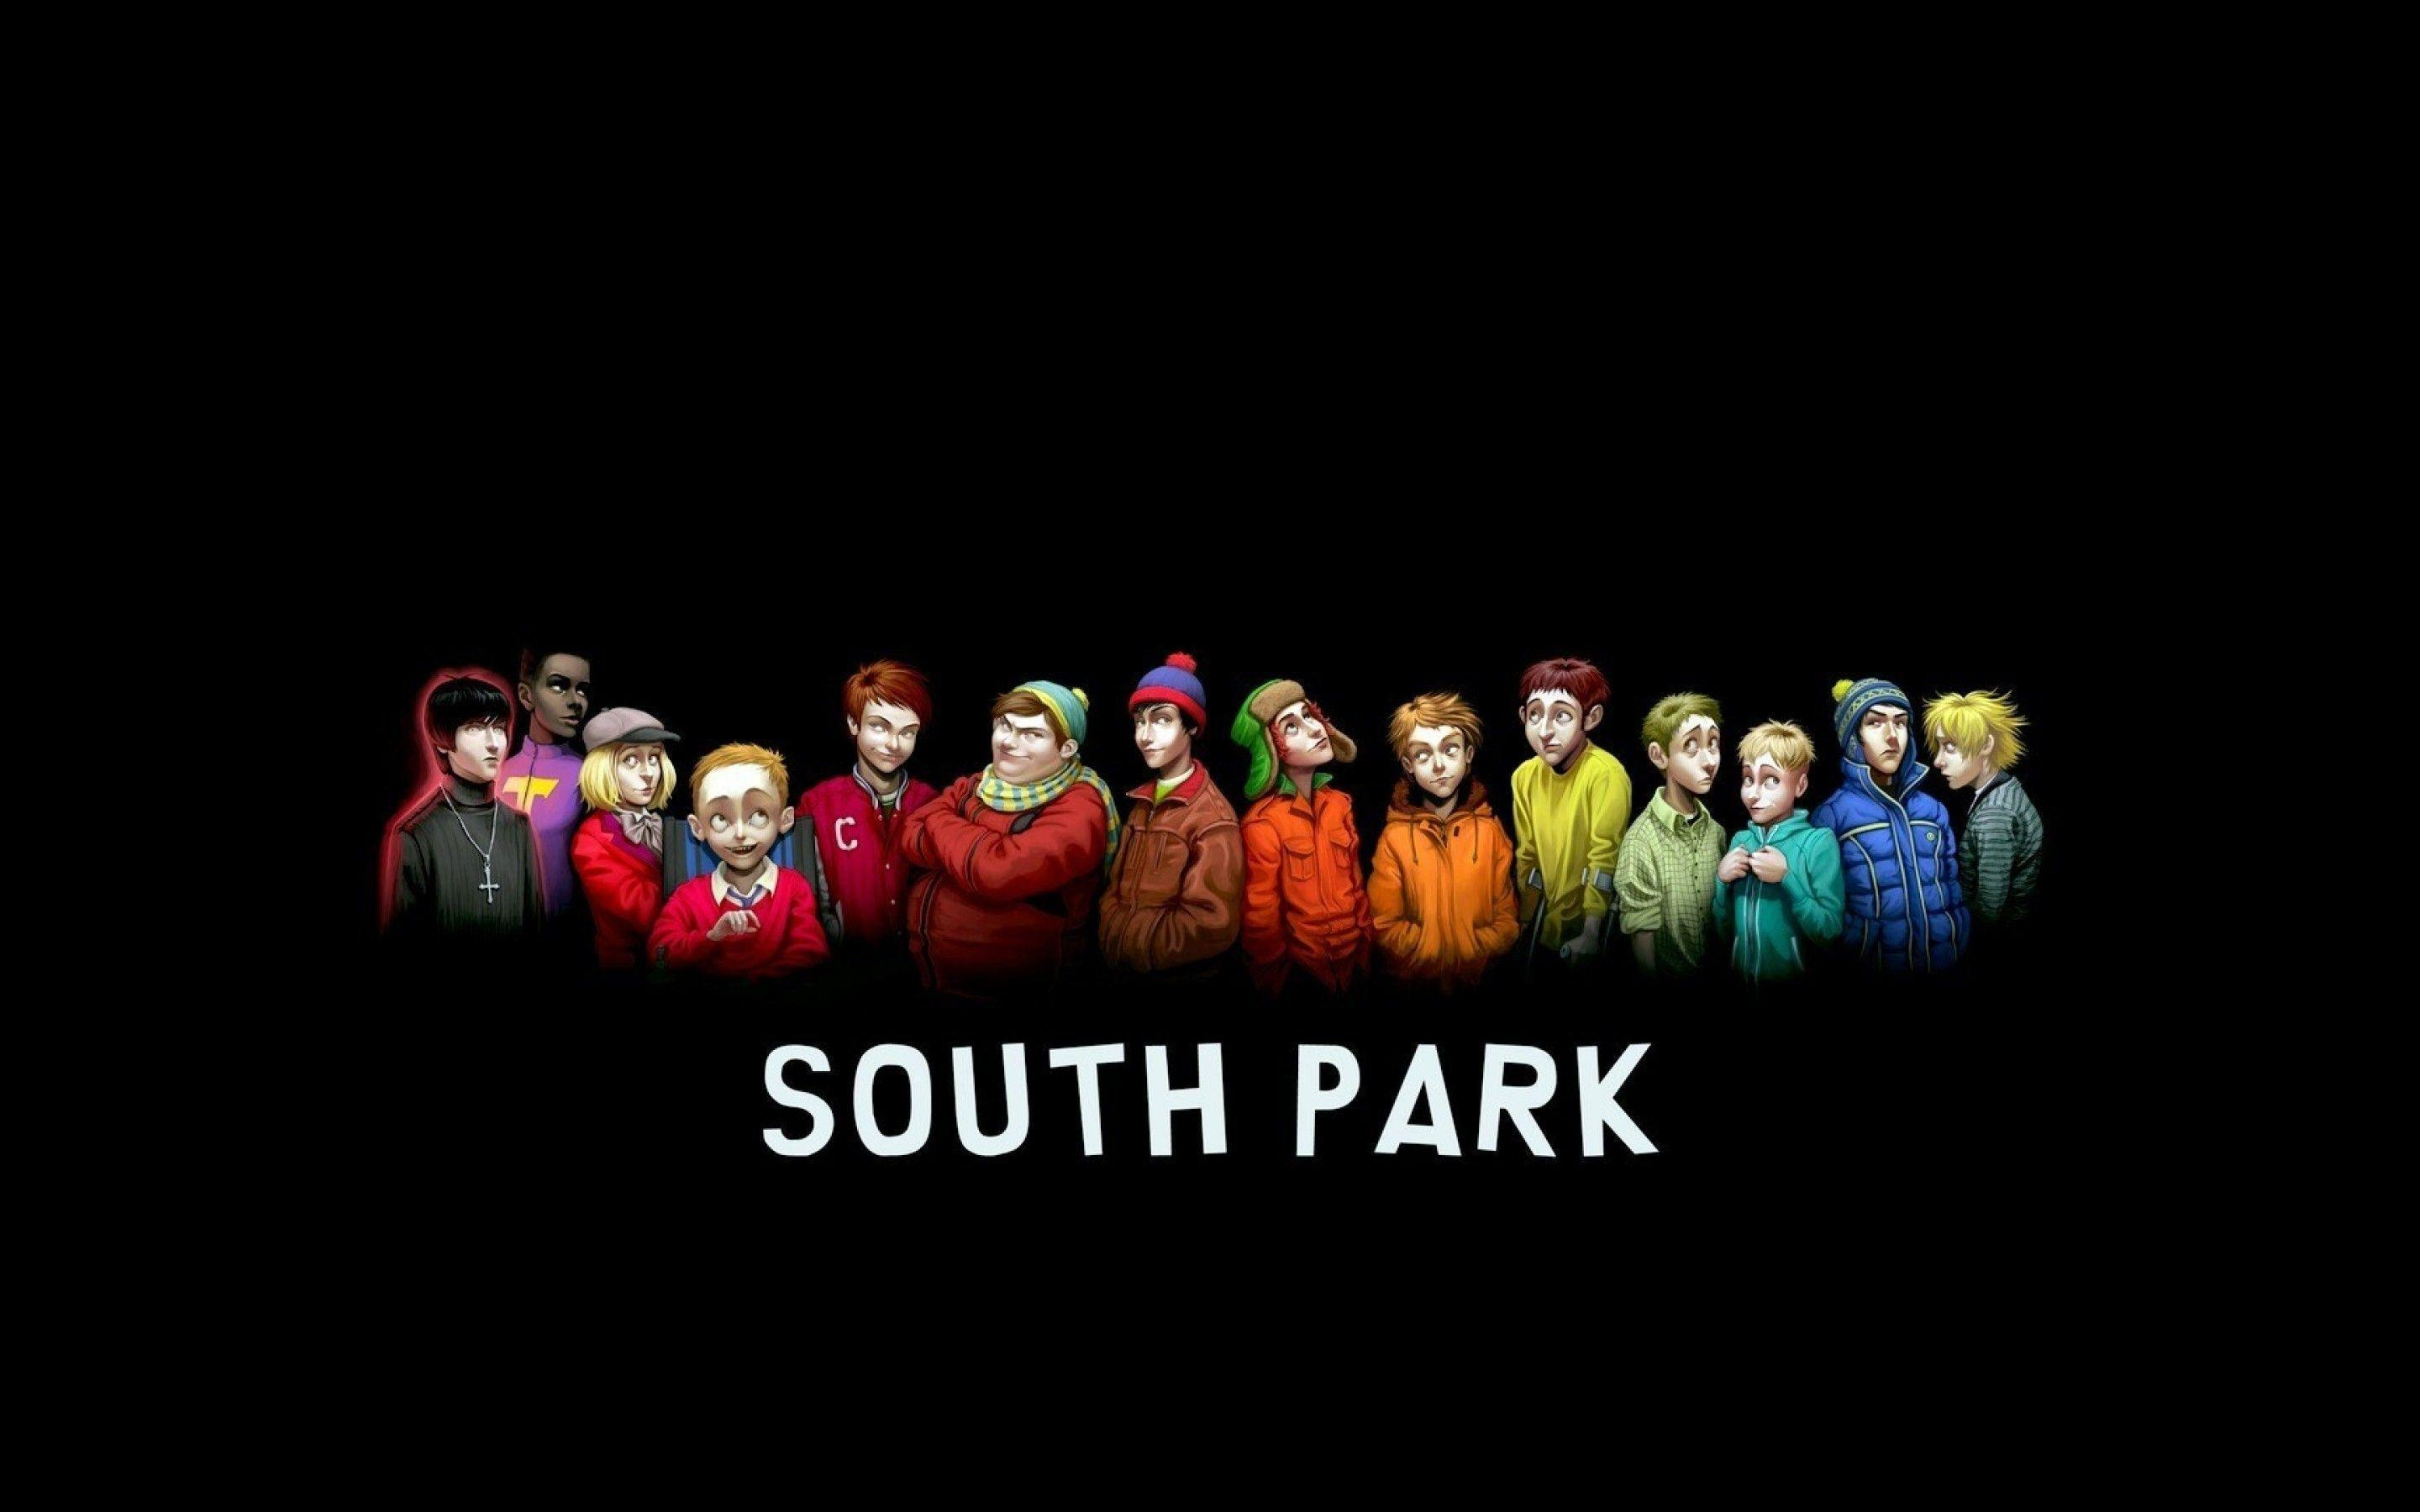 South Park Wallpapers - Full HD wallpaper search - page 2